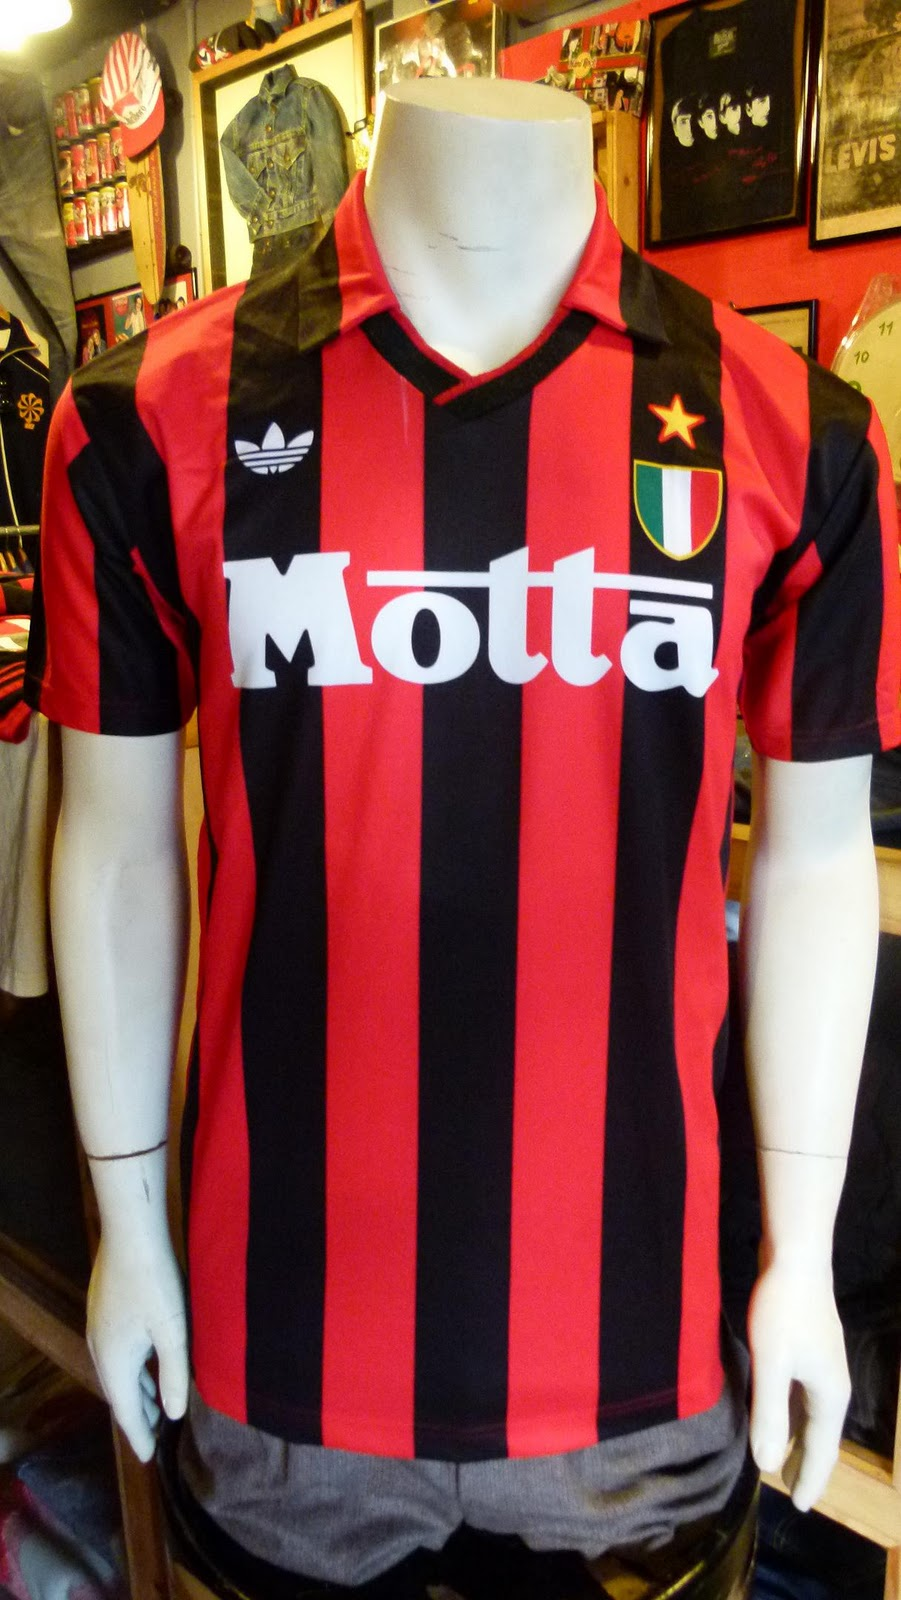 Used Clothing Strike On Twitter New 80s Adidas Top Ten: Pop Used Clothing: AC Milan Home Jersey